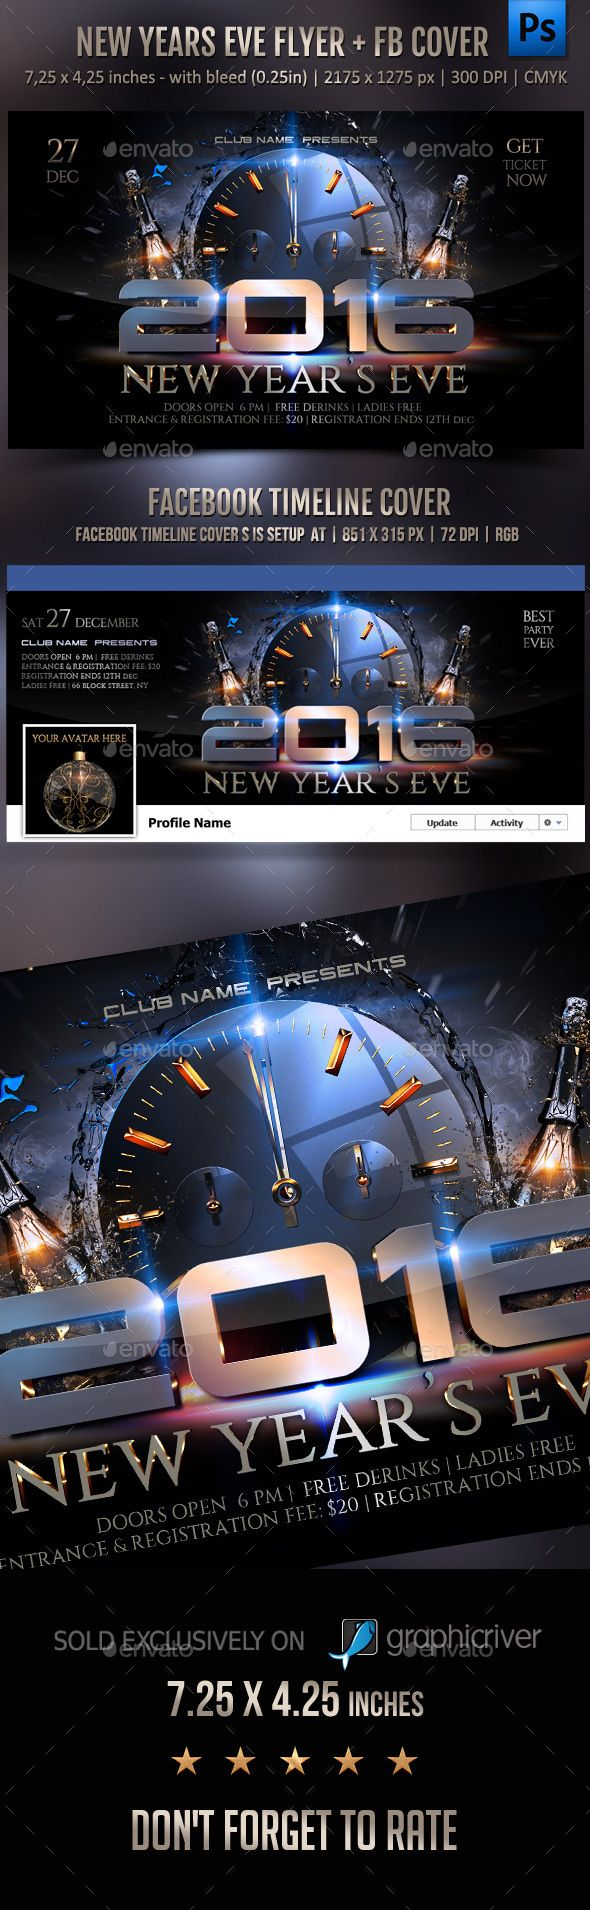 New Year Celebration Flyer + FB Cover Template PSD #design #nye Download: http://graphicriver.net/item/new-year-celebration-flyer-fb-cover/13352460?ref=ksioks